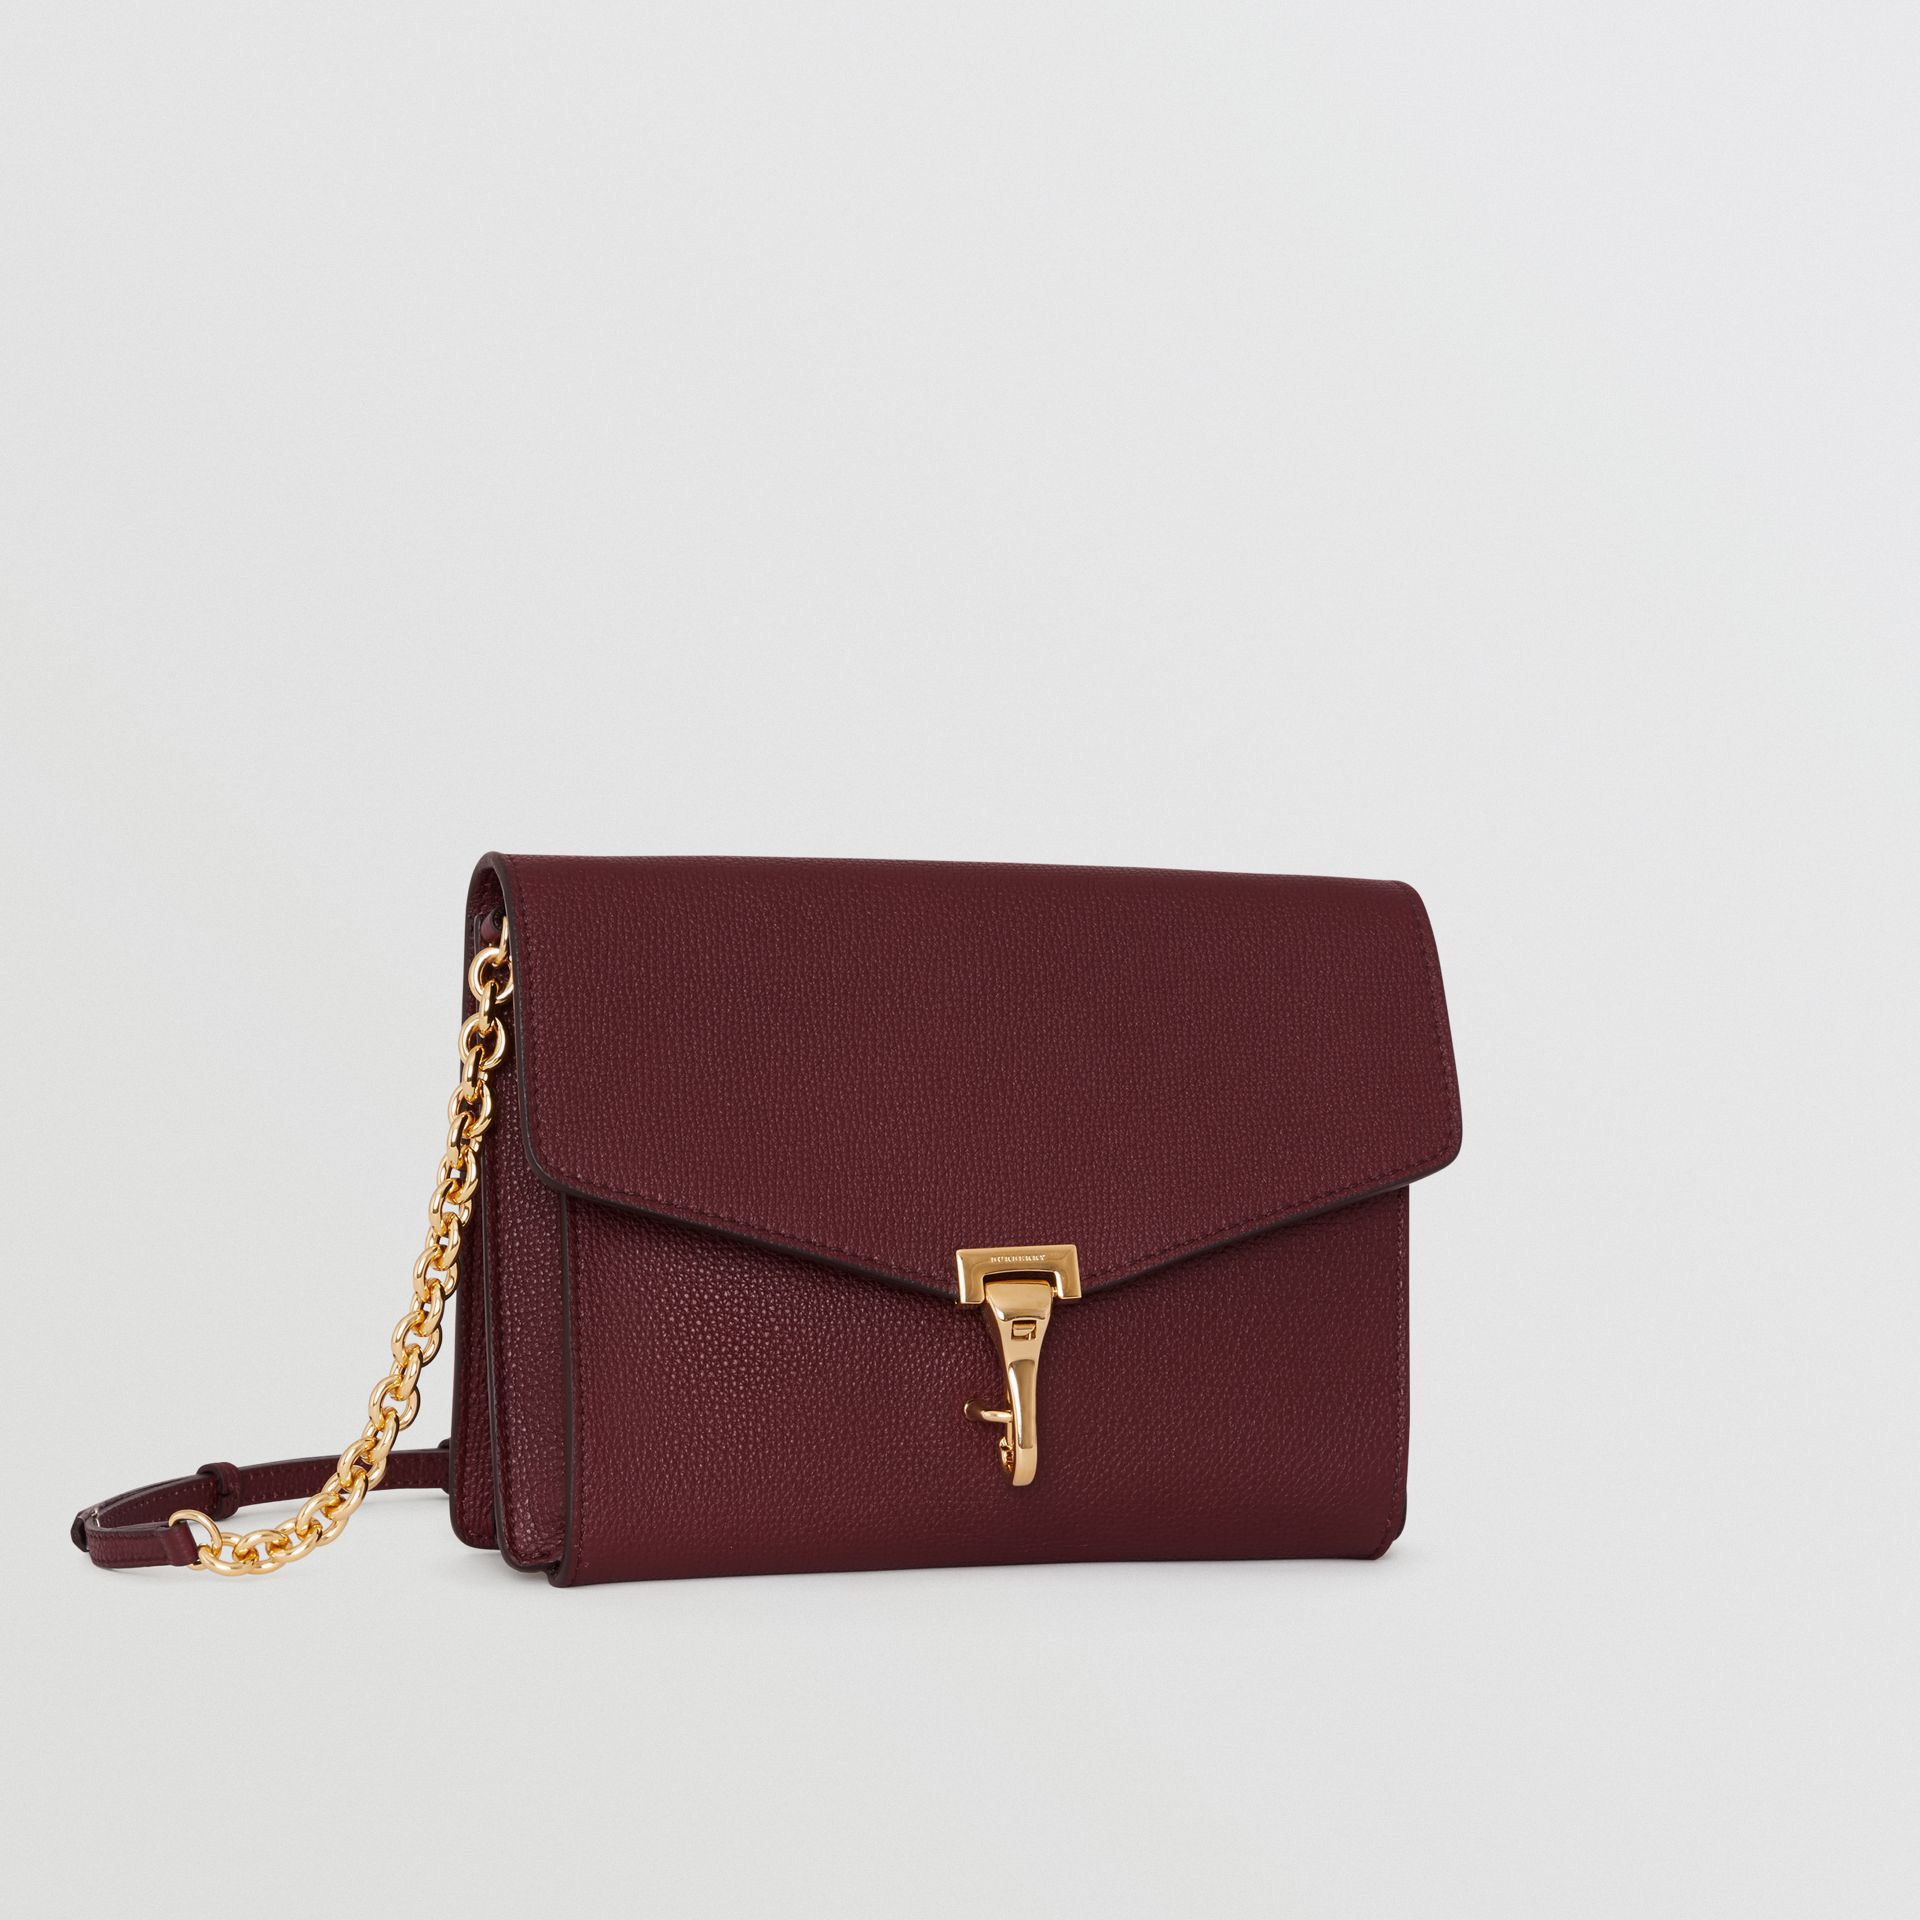 Small Leather Crossbody Bag in Mahogany Red - Women | Burberry United States - gallery image 6